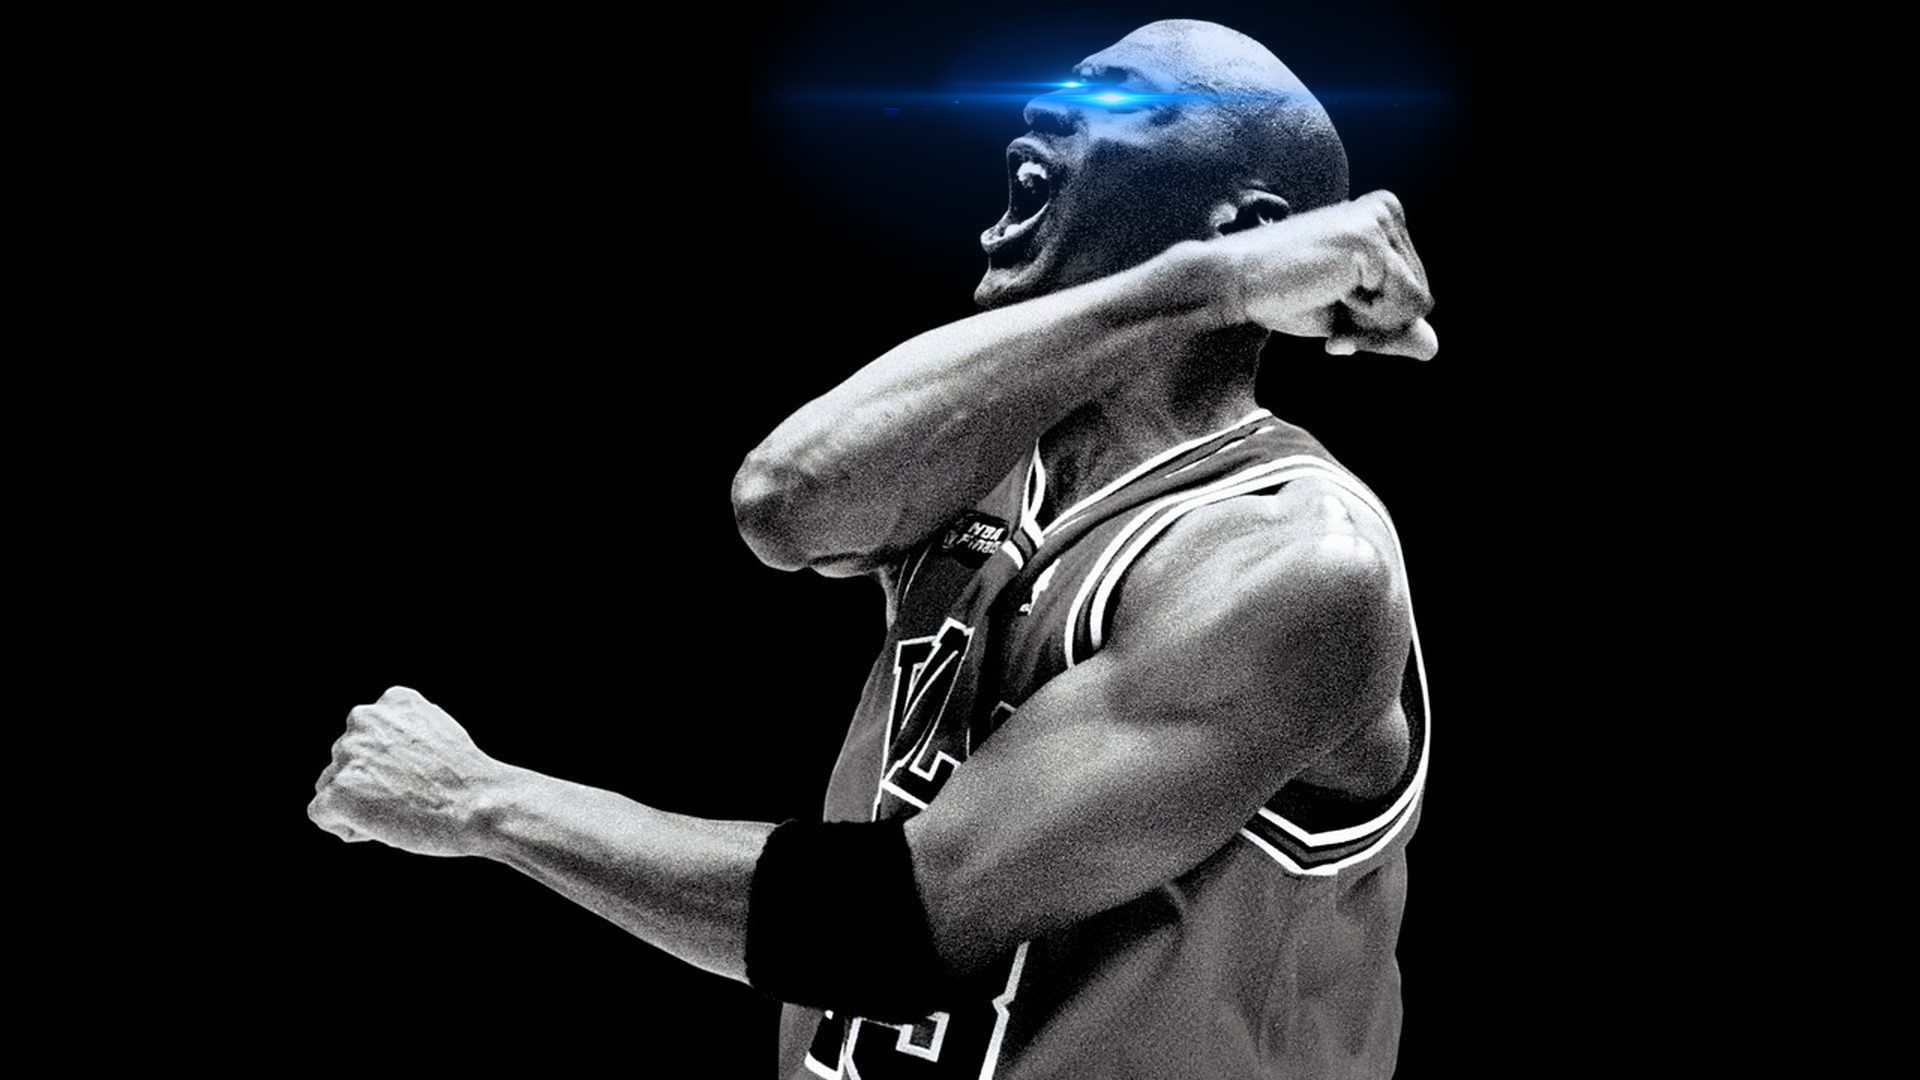 """The idea of classic Michael Jordan Moments, like """"The Shot,"""" or Kobe Bryant's """"Last Shot"""" for example, being released in limited editions would undoubtedly set absurd records."""